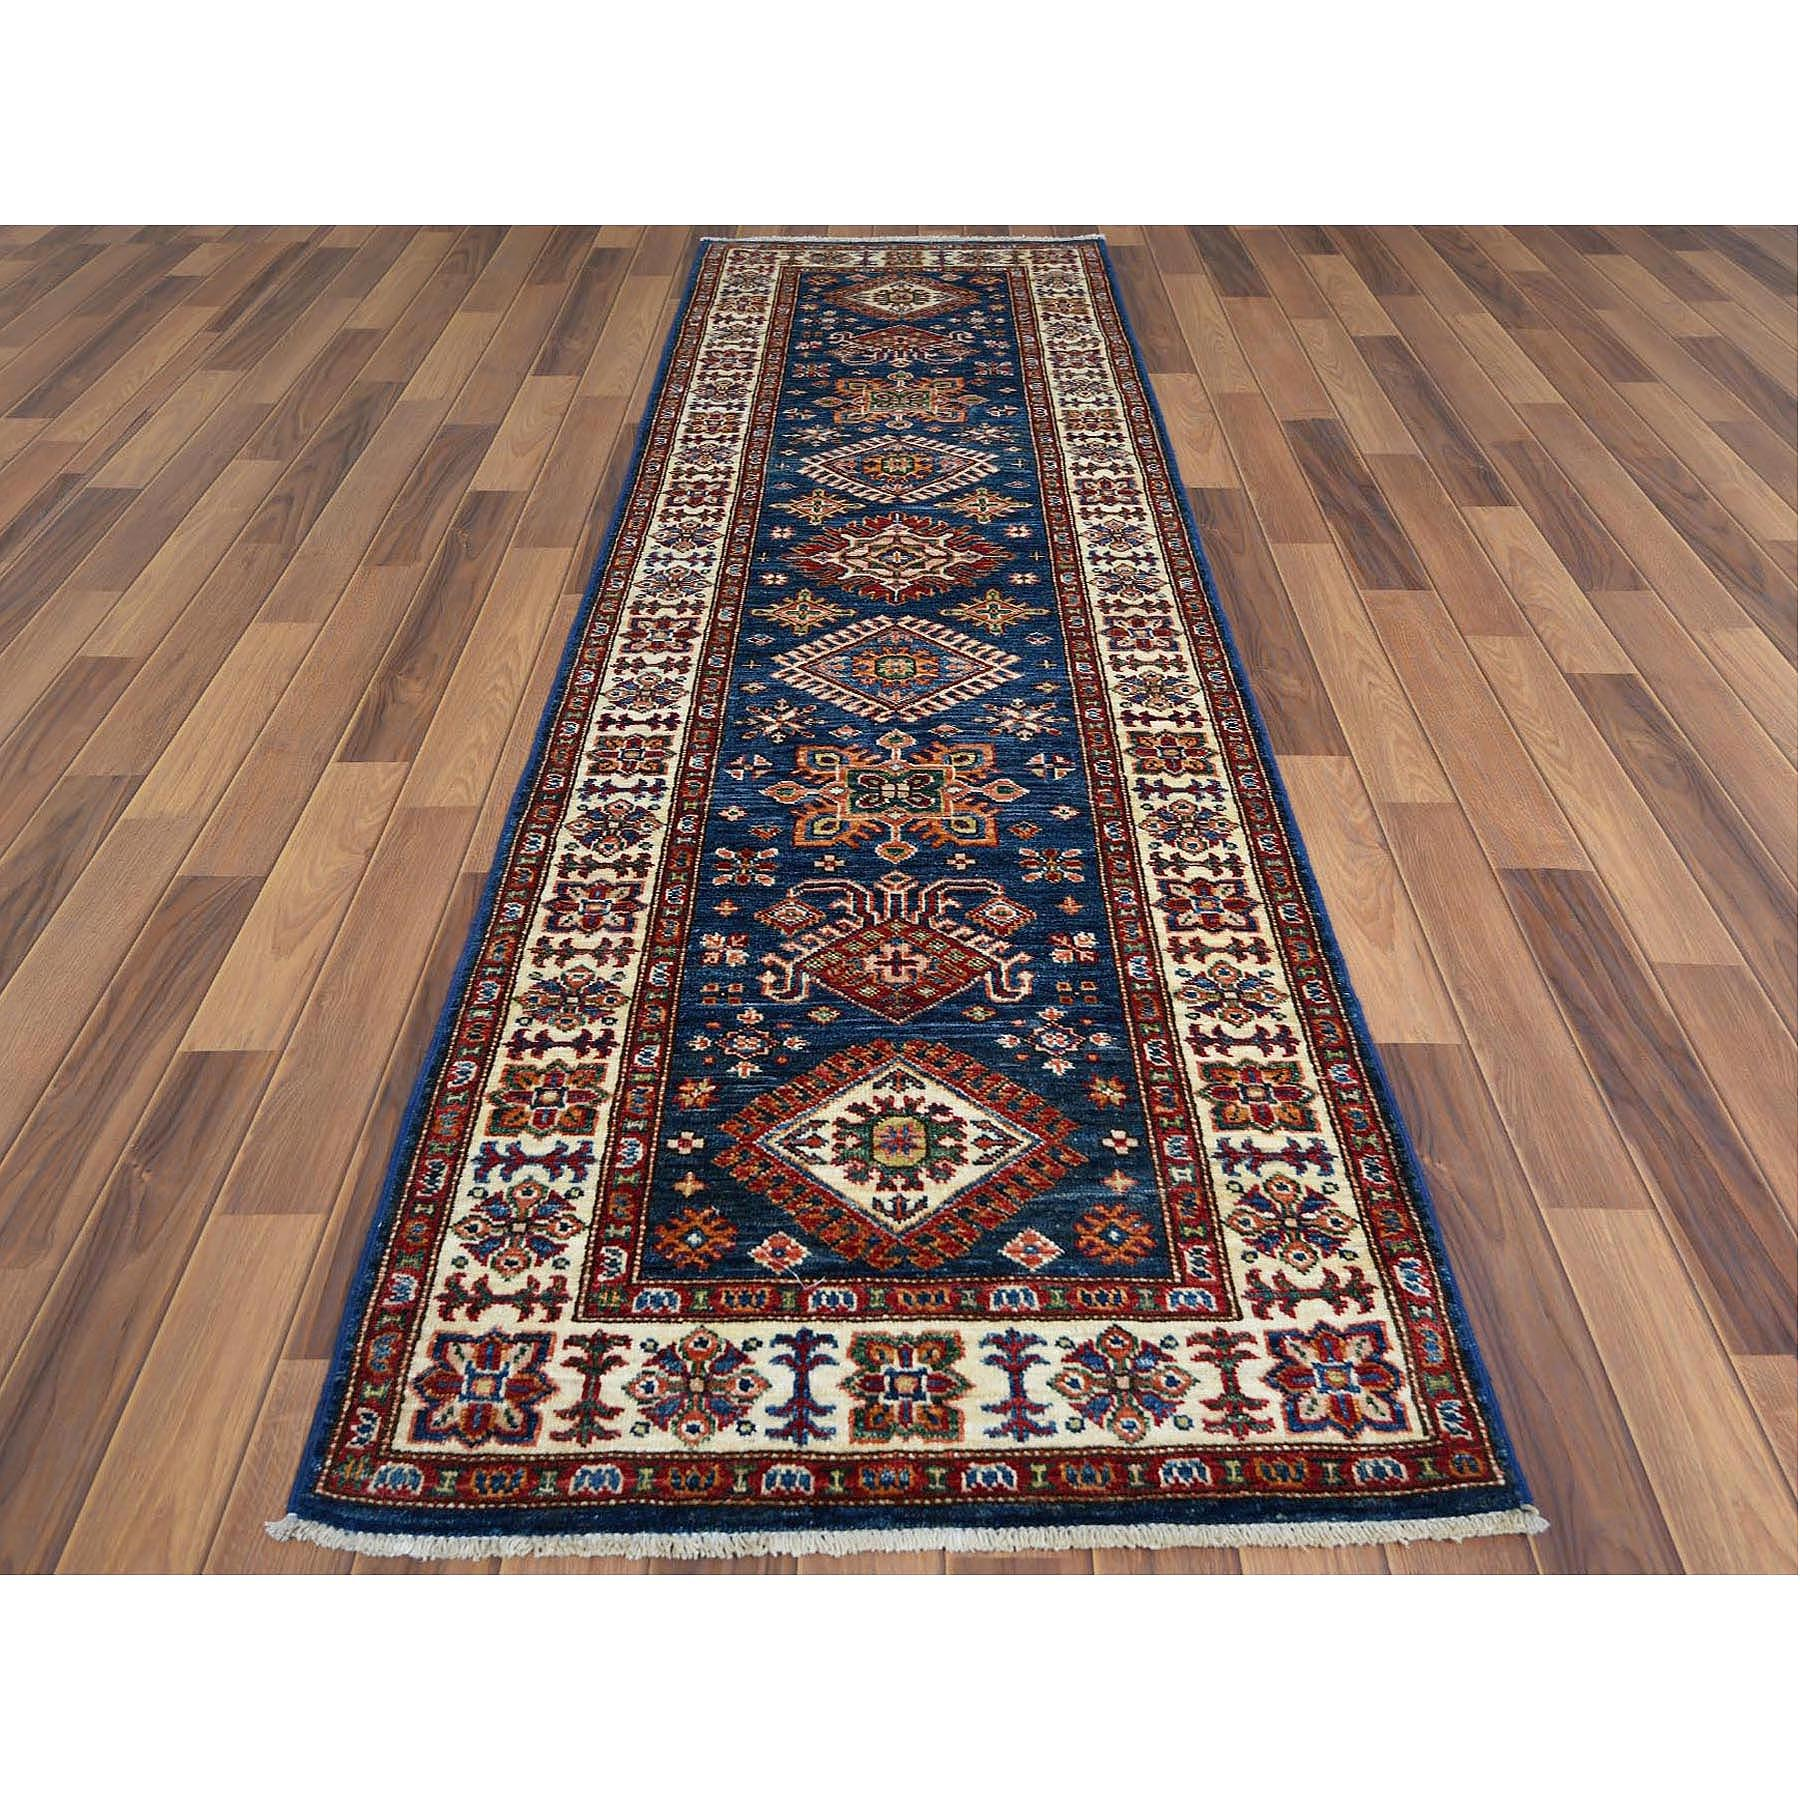 "2'7""x8'6"" Navy Blue Super Kazak With Tribal Design, Soft To The Touch Wool Pile Hand Knotted Oriental Runner Rug"